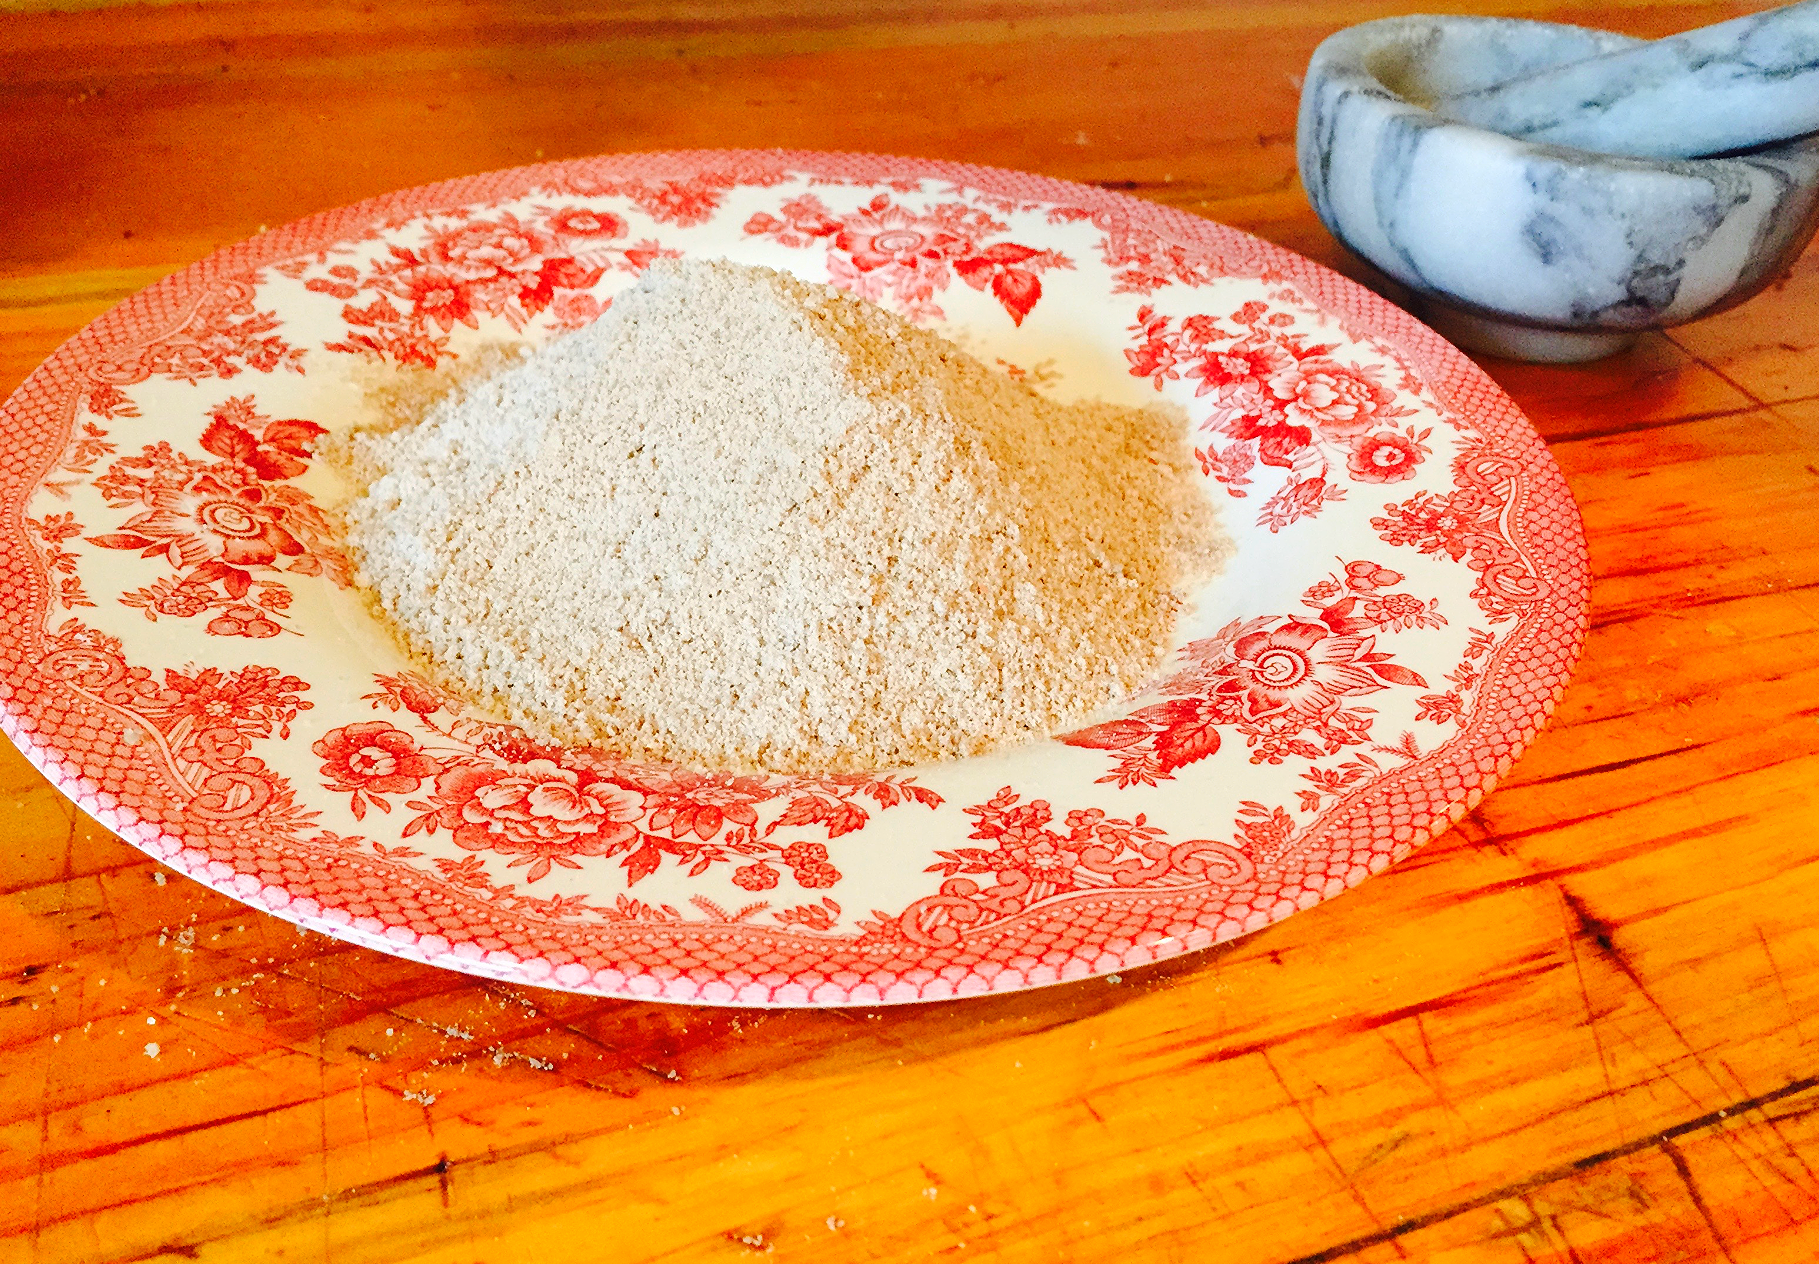 Mound of Smoked Sea Salt